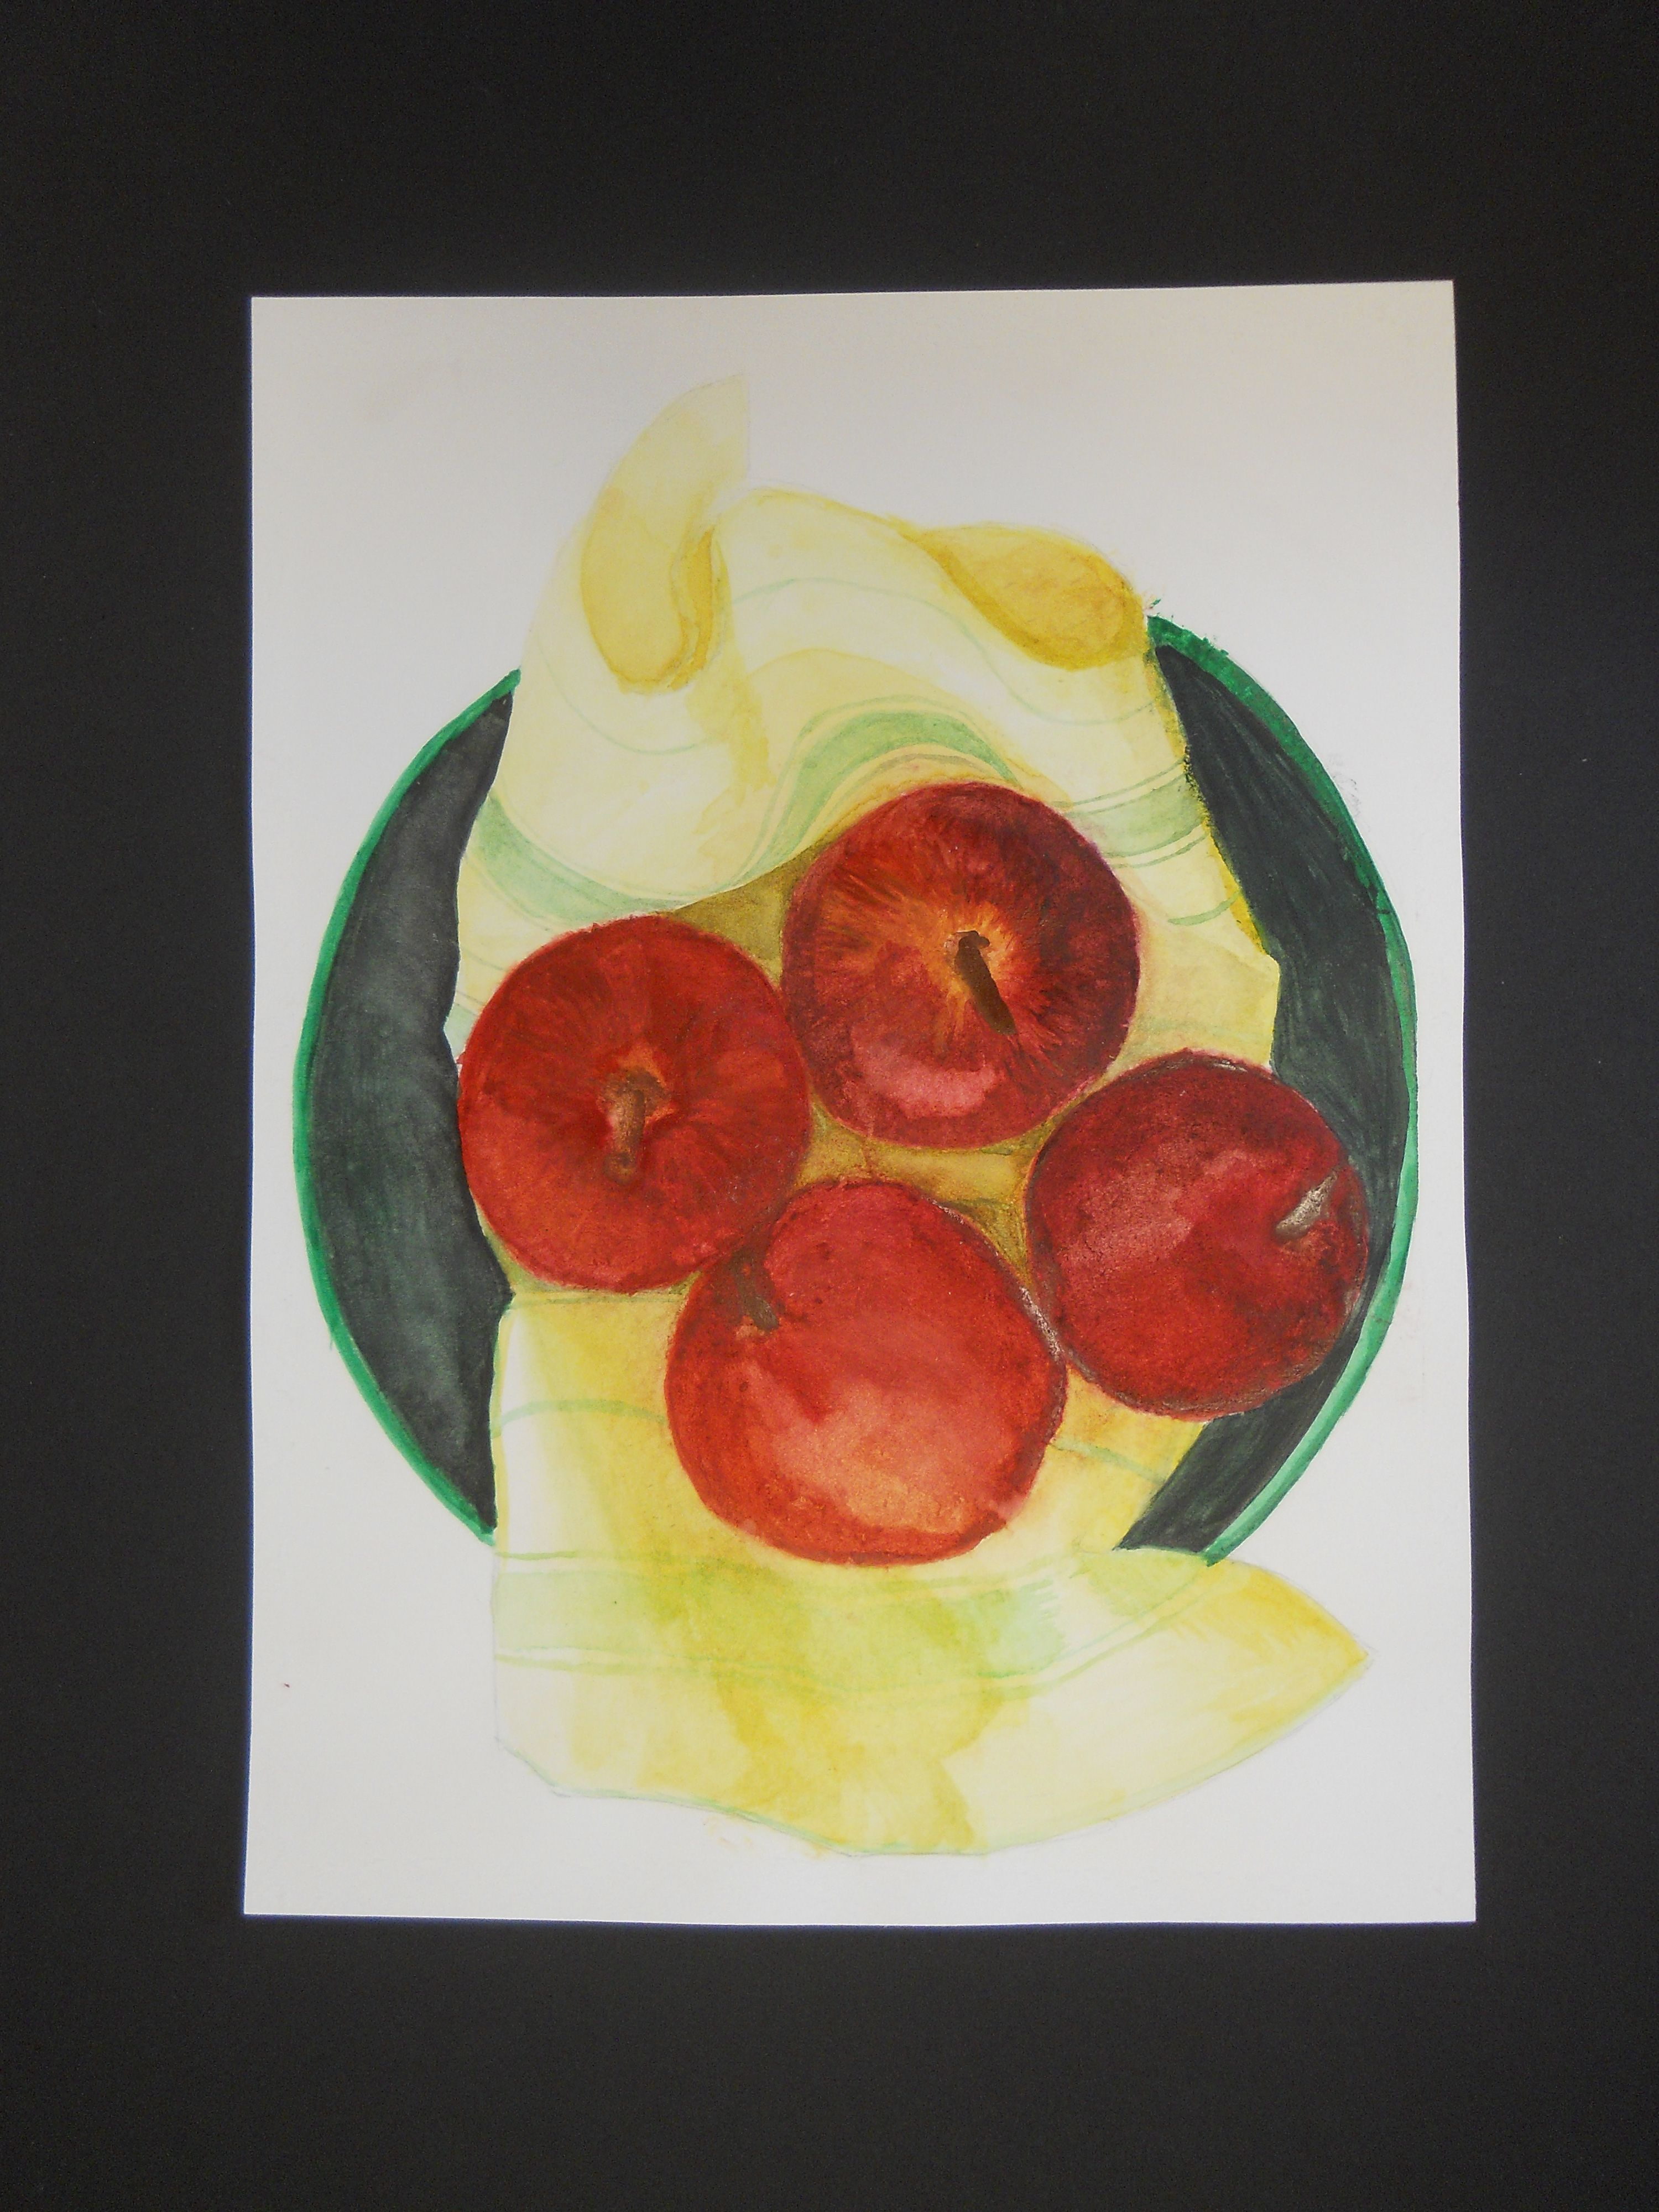 Watercolor Still Life - working from photos to imitate color, value, texture and lighting